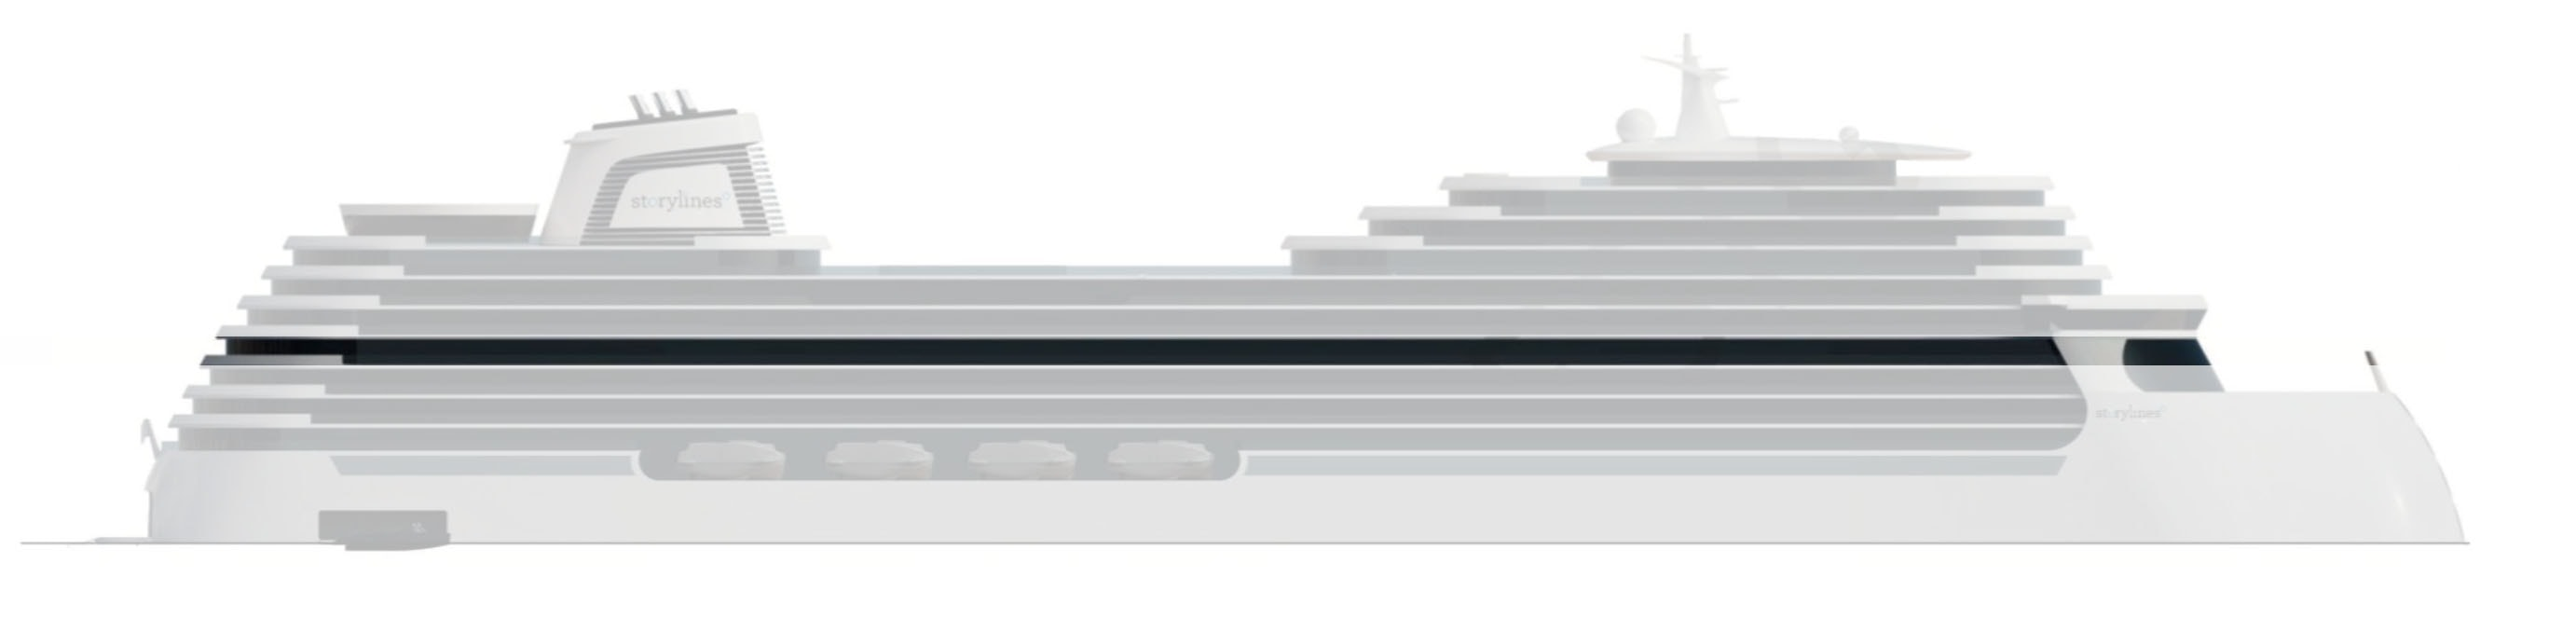 Deck 10 layout of Storylines residential cruise ship MV Narrative